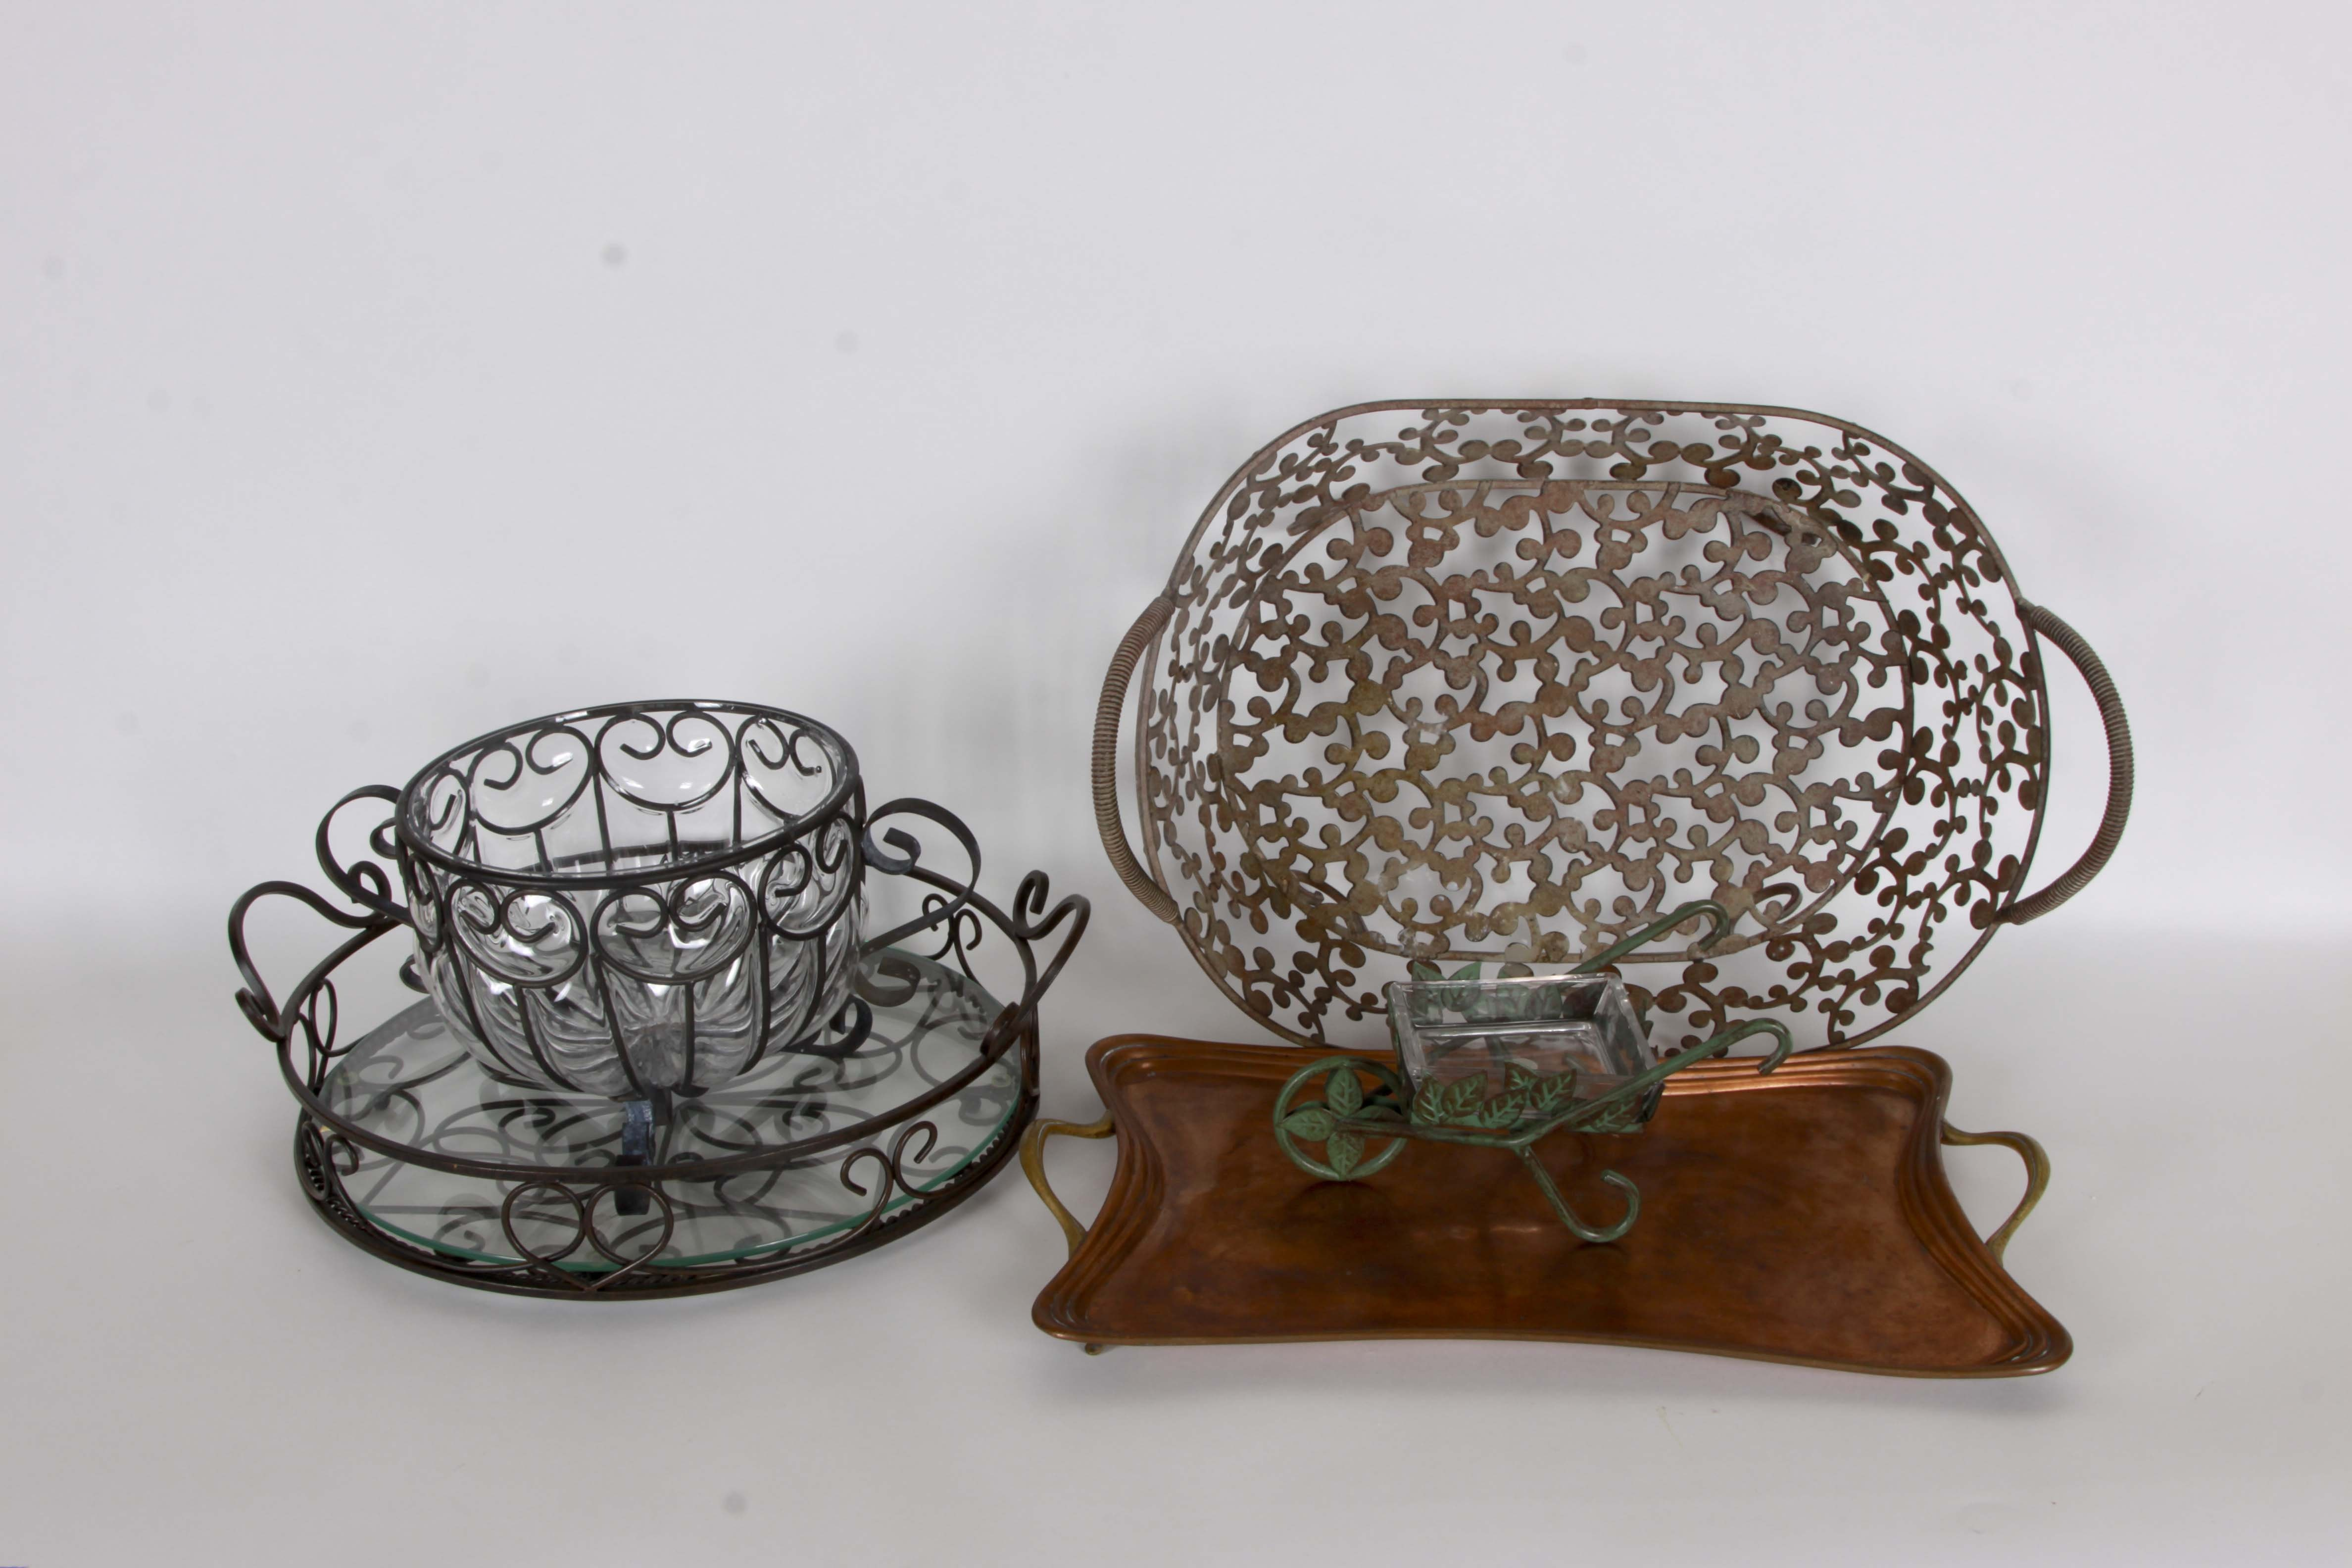 Collection of Metal Decor